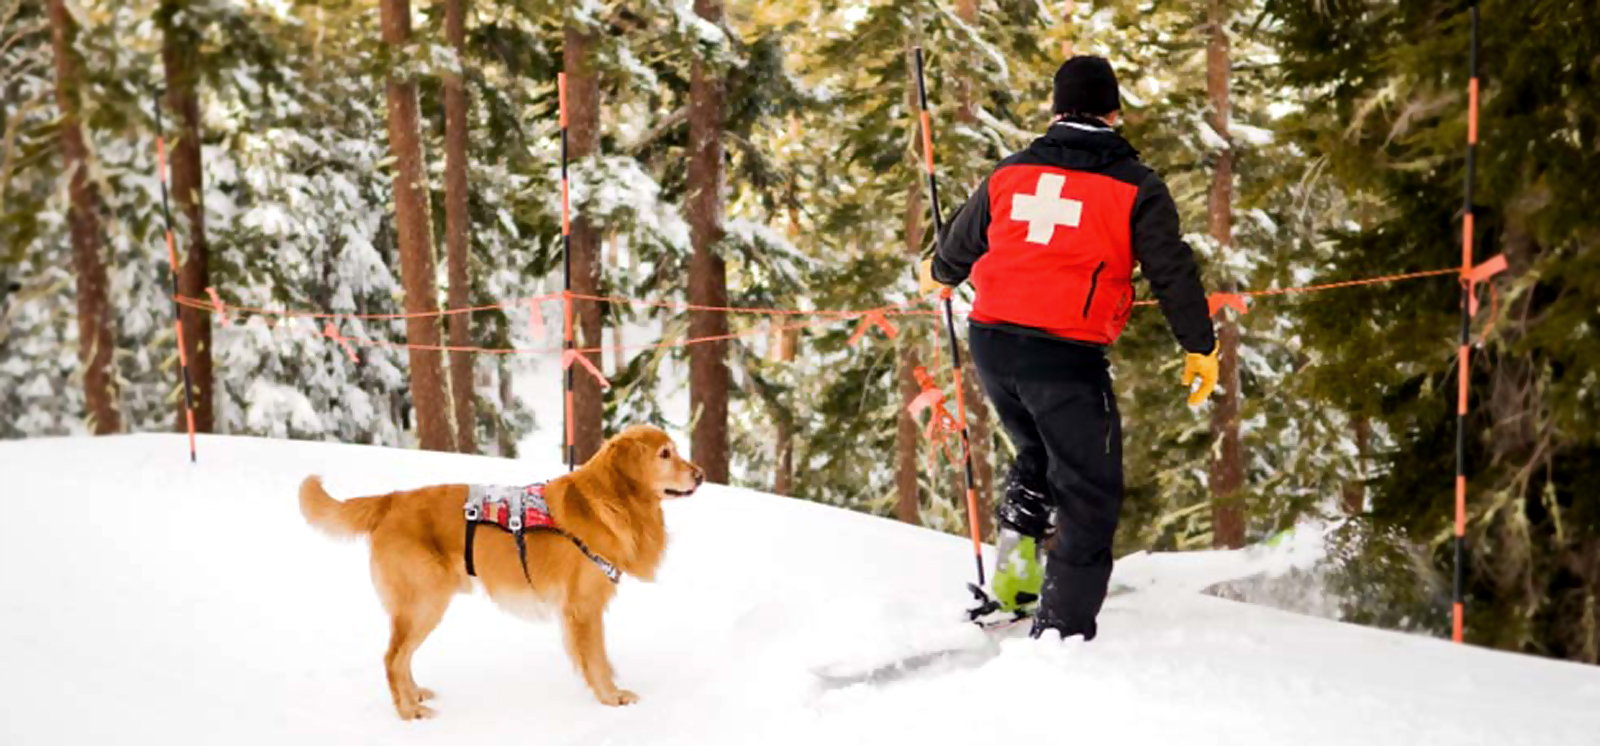 Italian Red Cross canine rescue unit